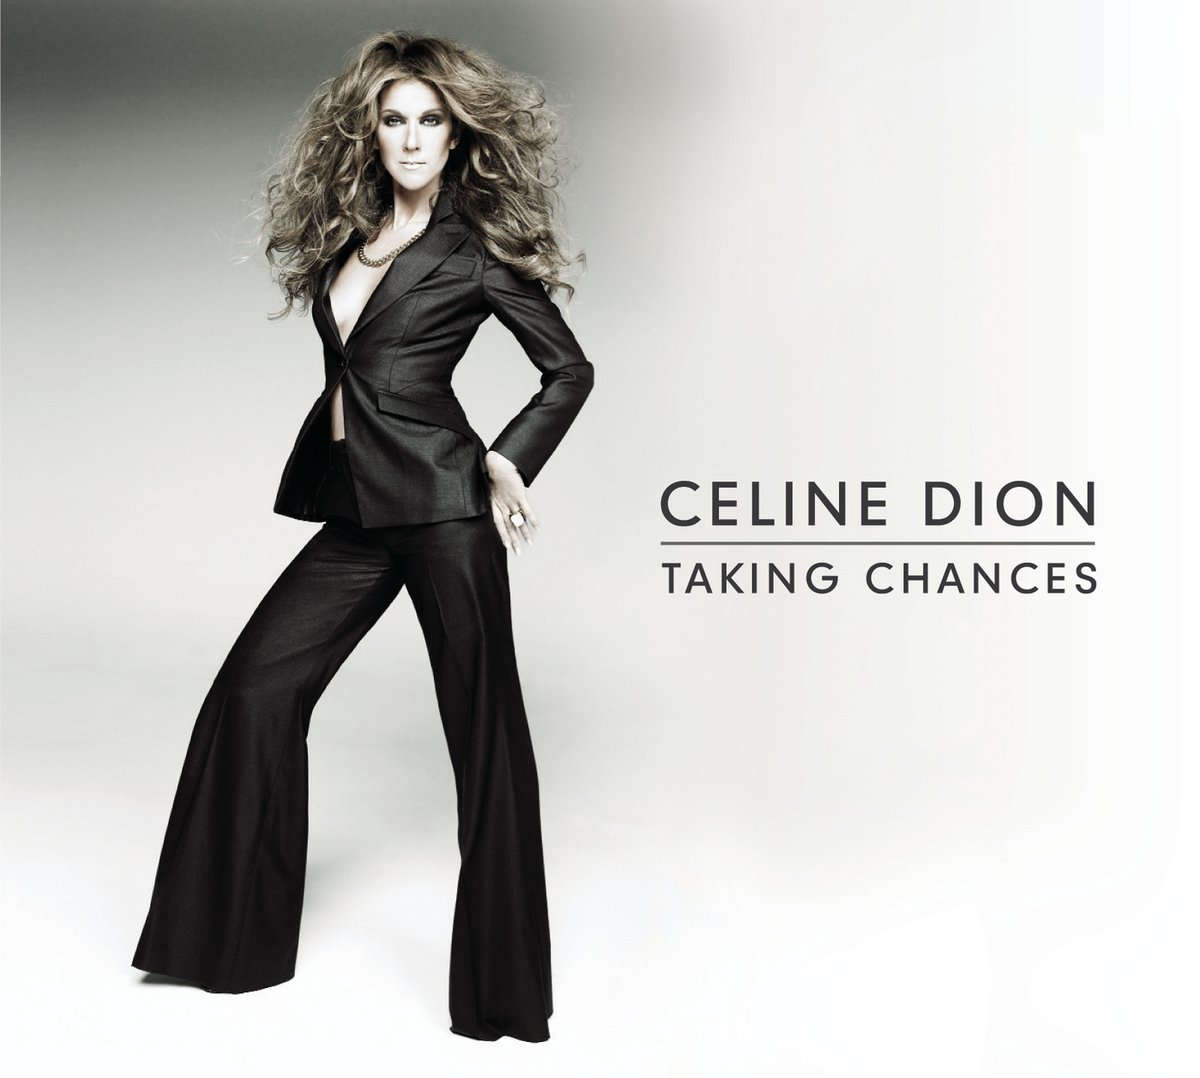 """A vocal master class with a soaring chorus, @celinedion's """"Taking Chances"""" deserved so much more: https://t.co/TQwU3pnWyw https://t.co/jtekTJH8bx"""